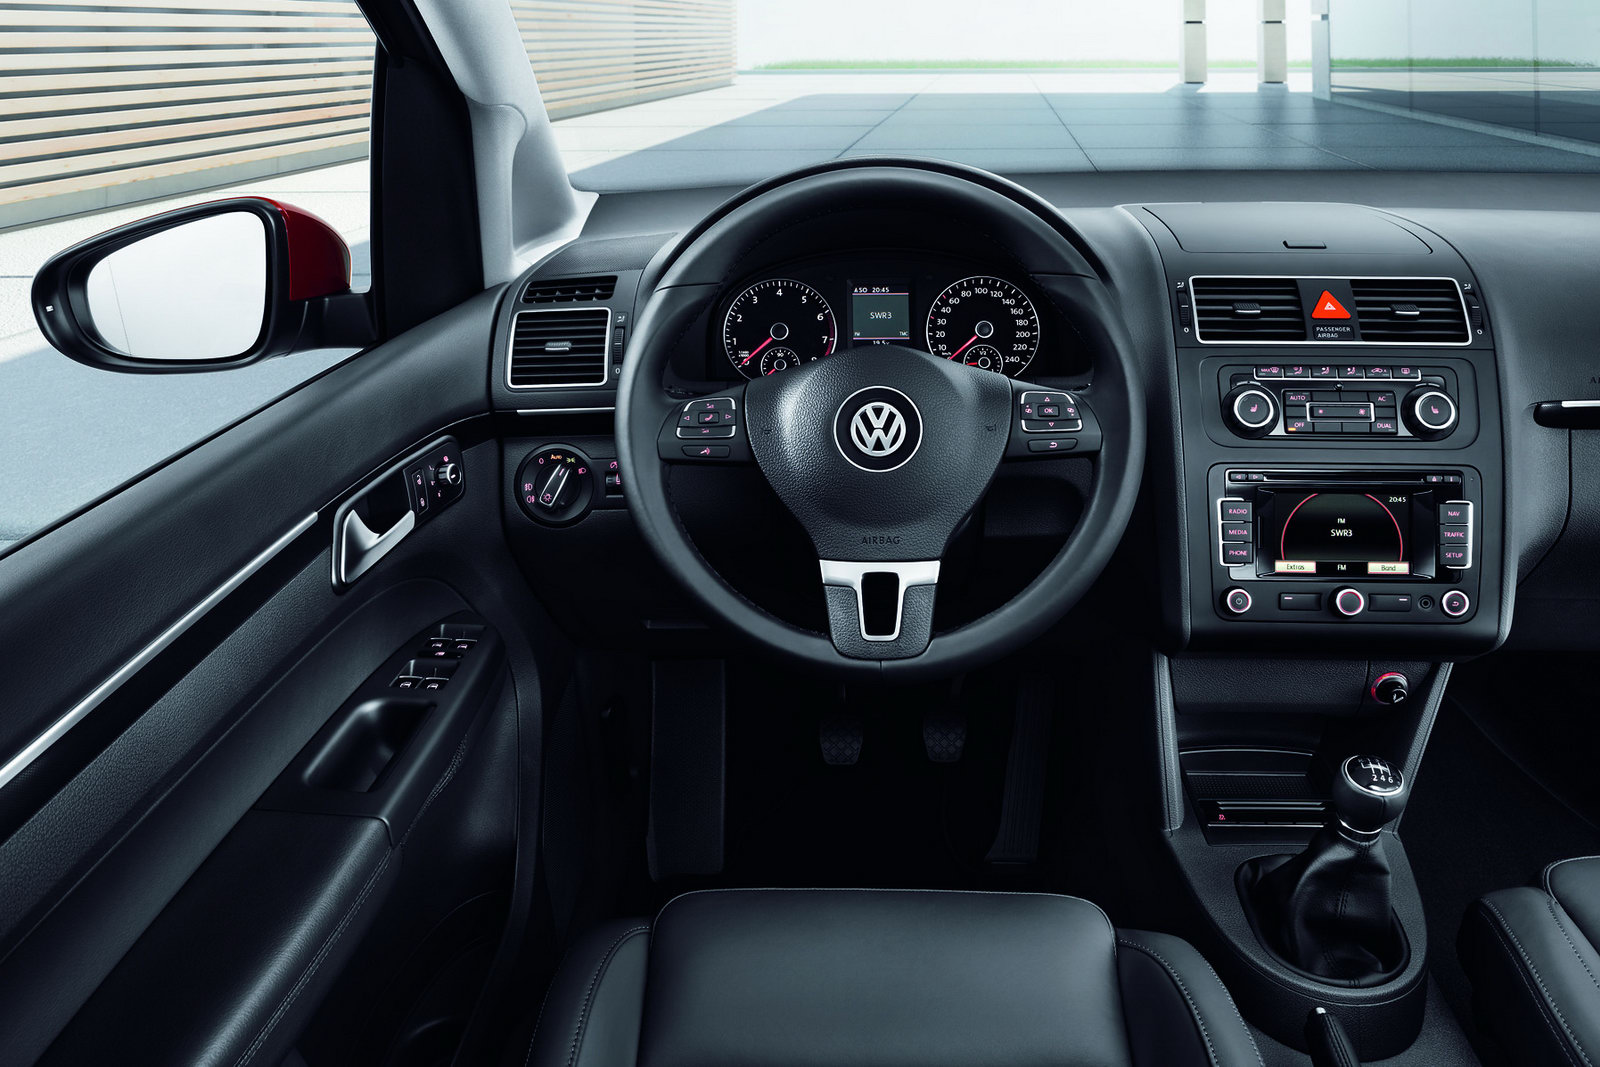 World Concept Cars 2011 Volkswagen Touran 7 Seater Mpv Receives Second Mid Life Facelift